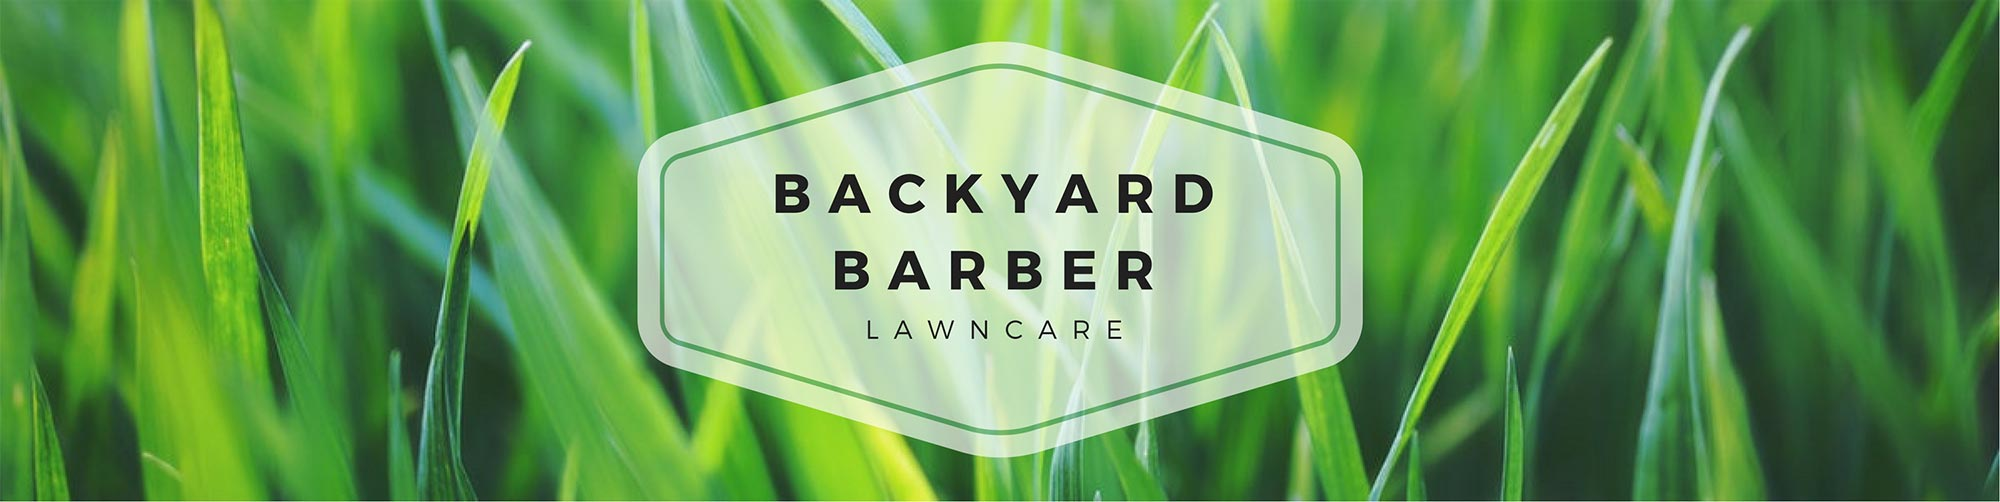 Backyard Barber Lawn Care - Quincy, IL